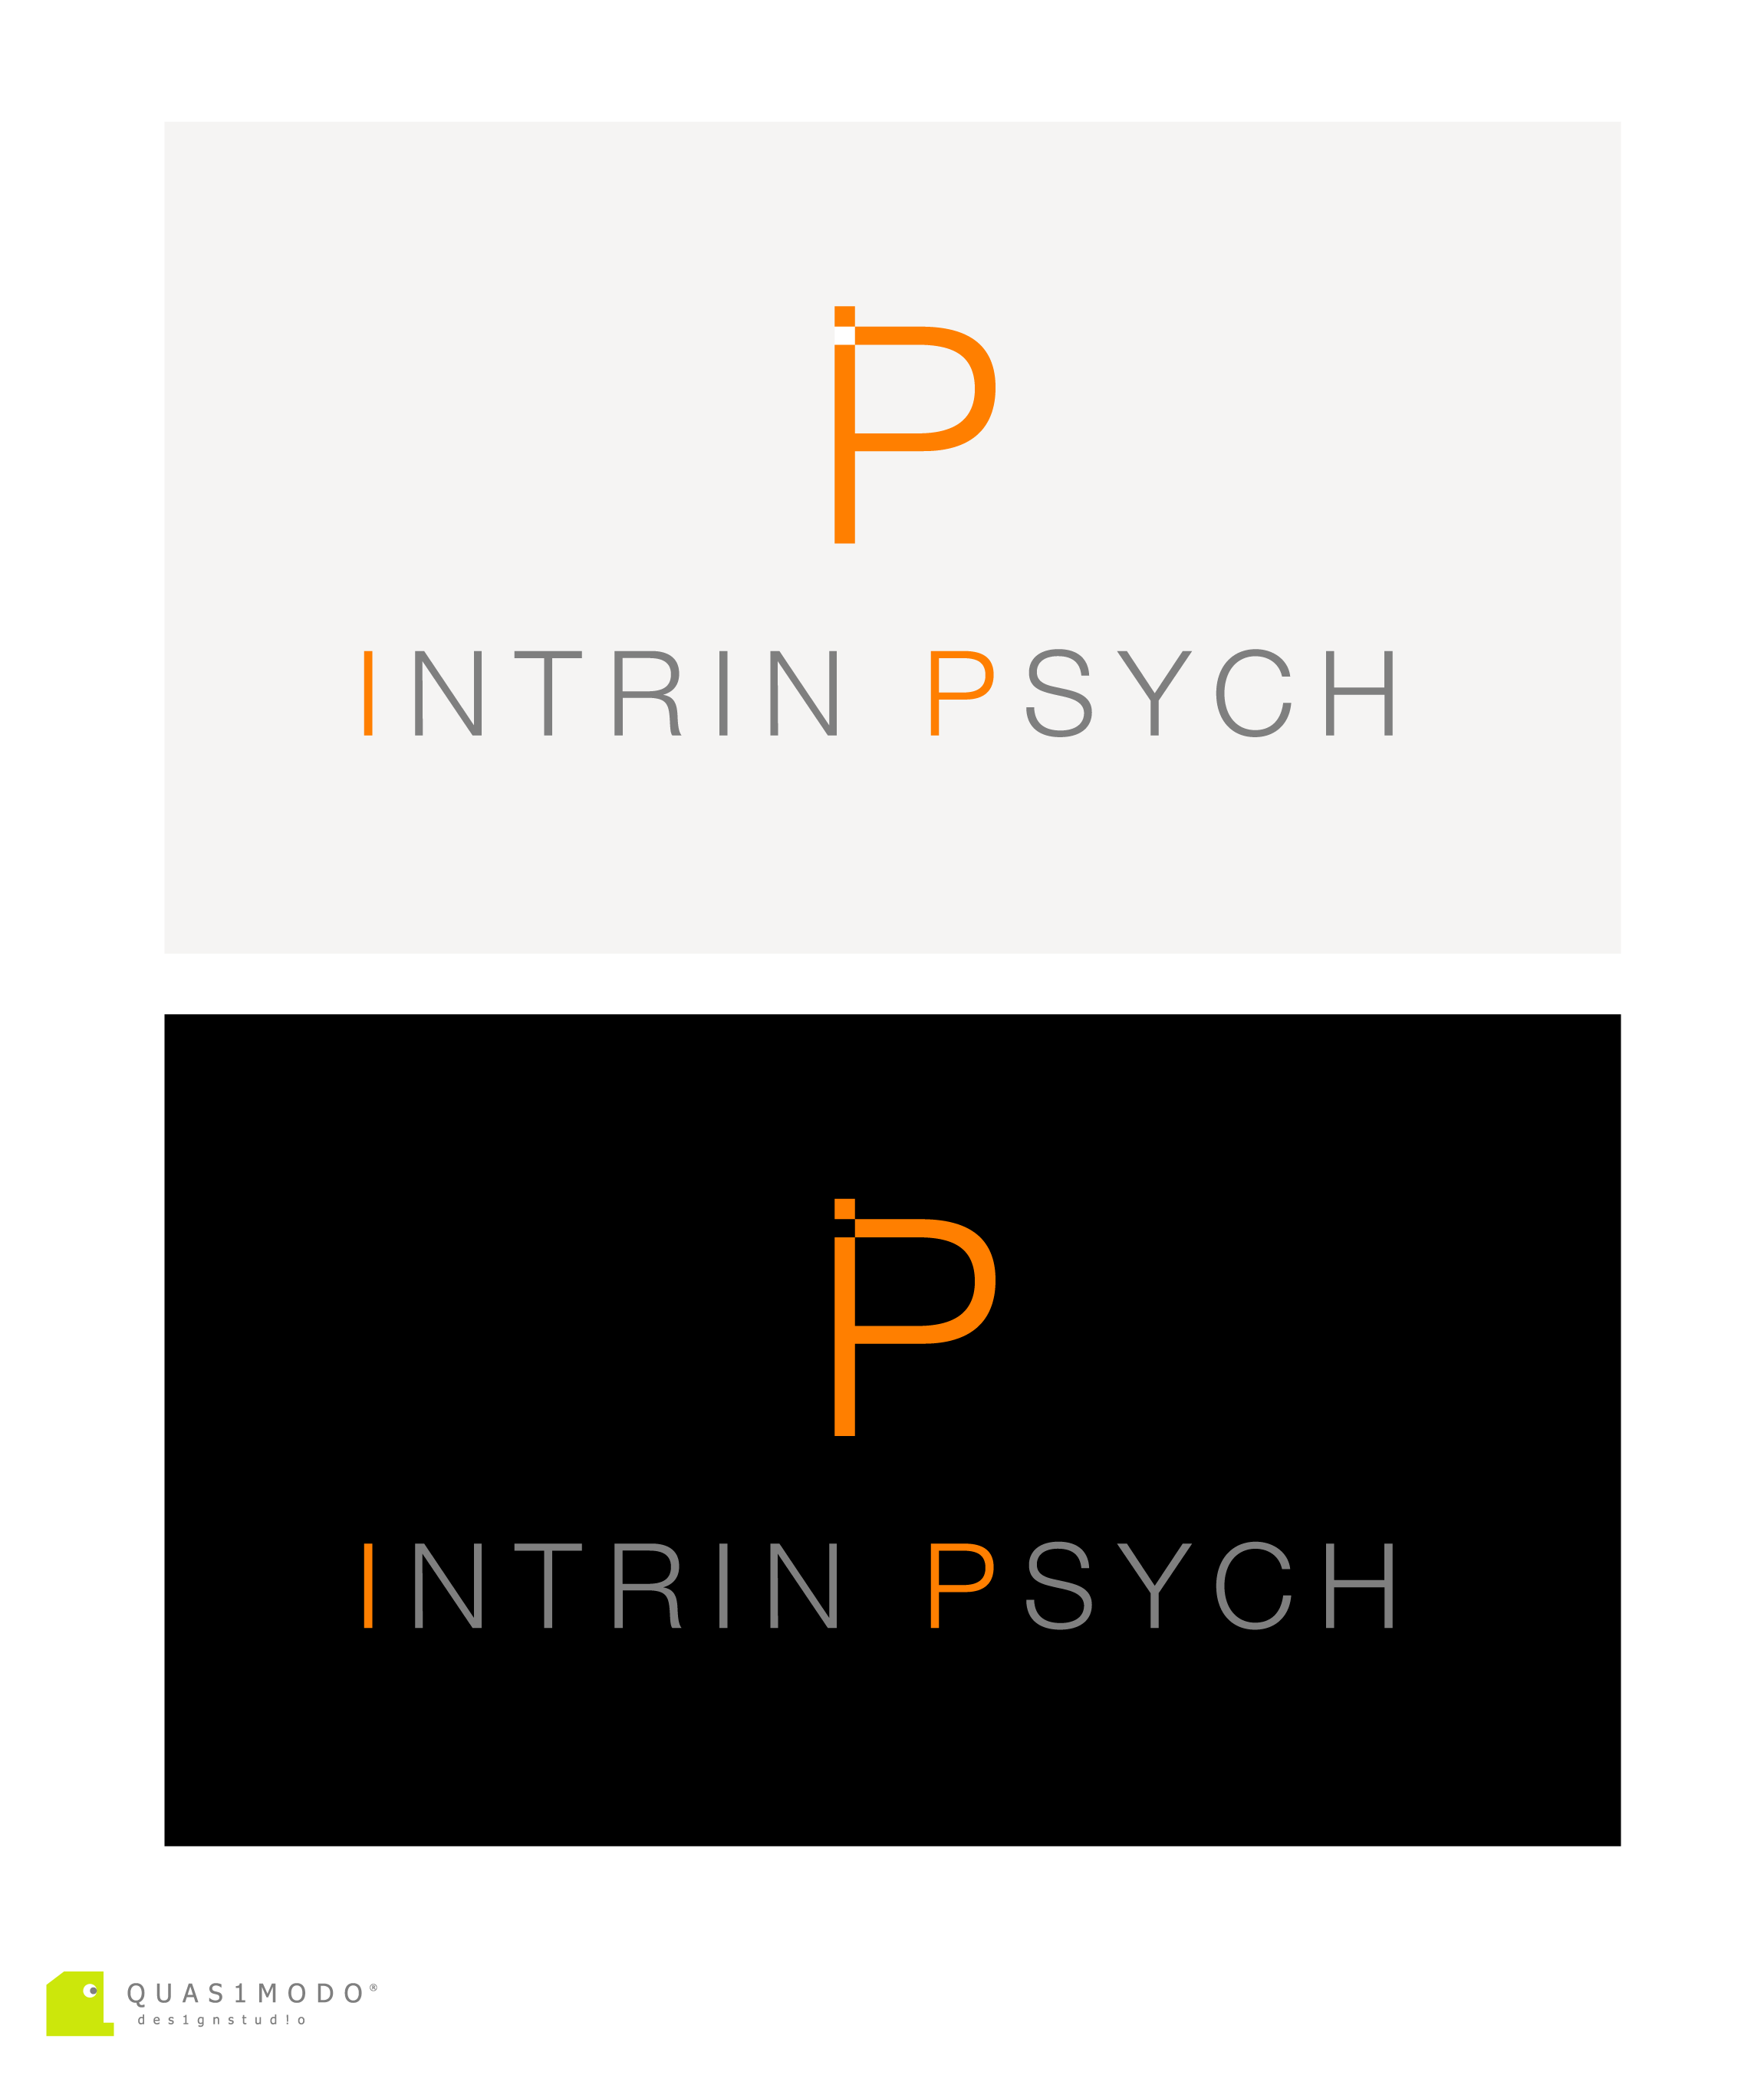 Logo Design by DIMITRIOS PAPADOPOULOS - Entry No. 165 in the Logo Design Contest New Logo Design for IntrinPsych.